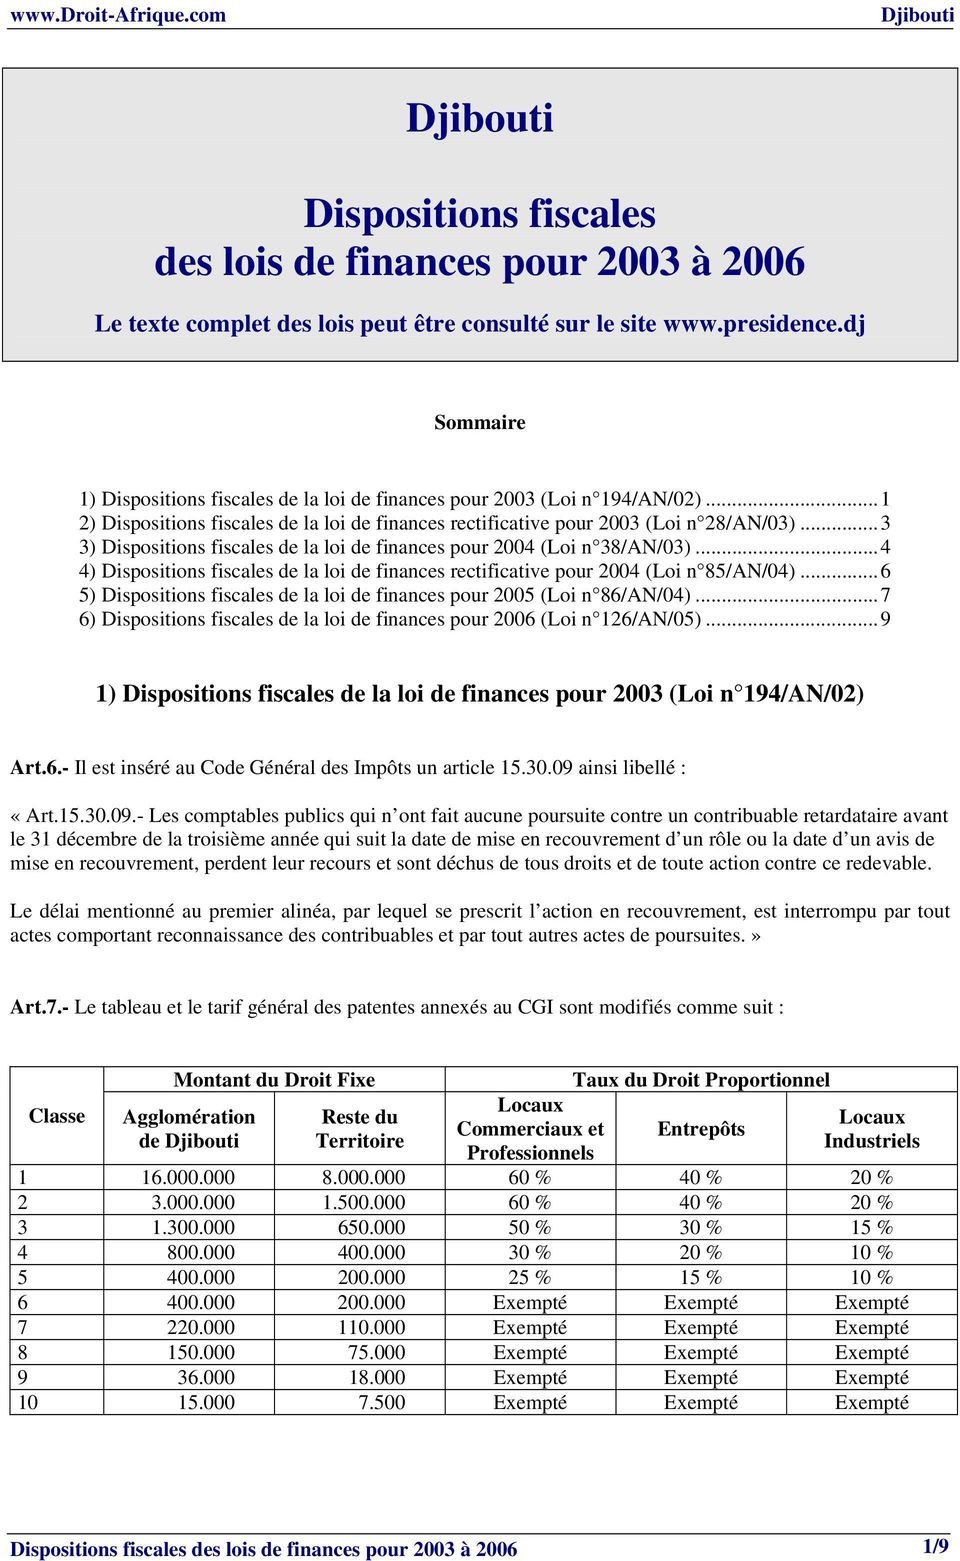 ..3 3) Dispositions fiscales de la loi de finances pour 2004 (Loi n 38/AN/03)...4 4) Dispositions fiscales de la loi de finances rectificative pour 2004 (Loi n 85/AN/04).